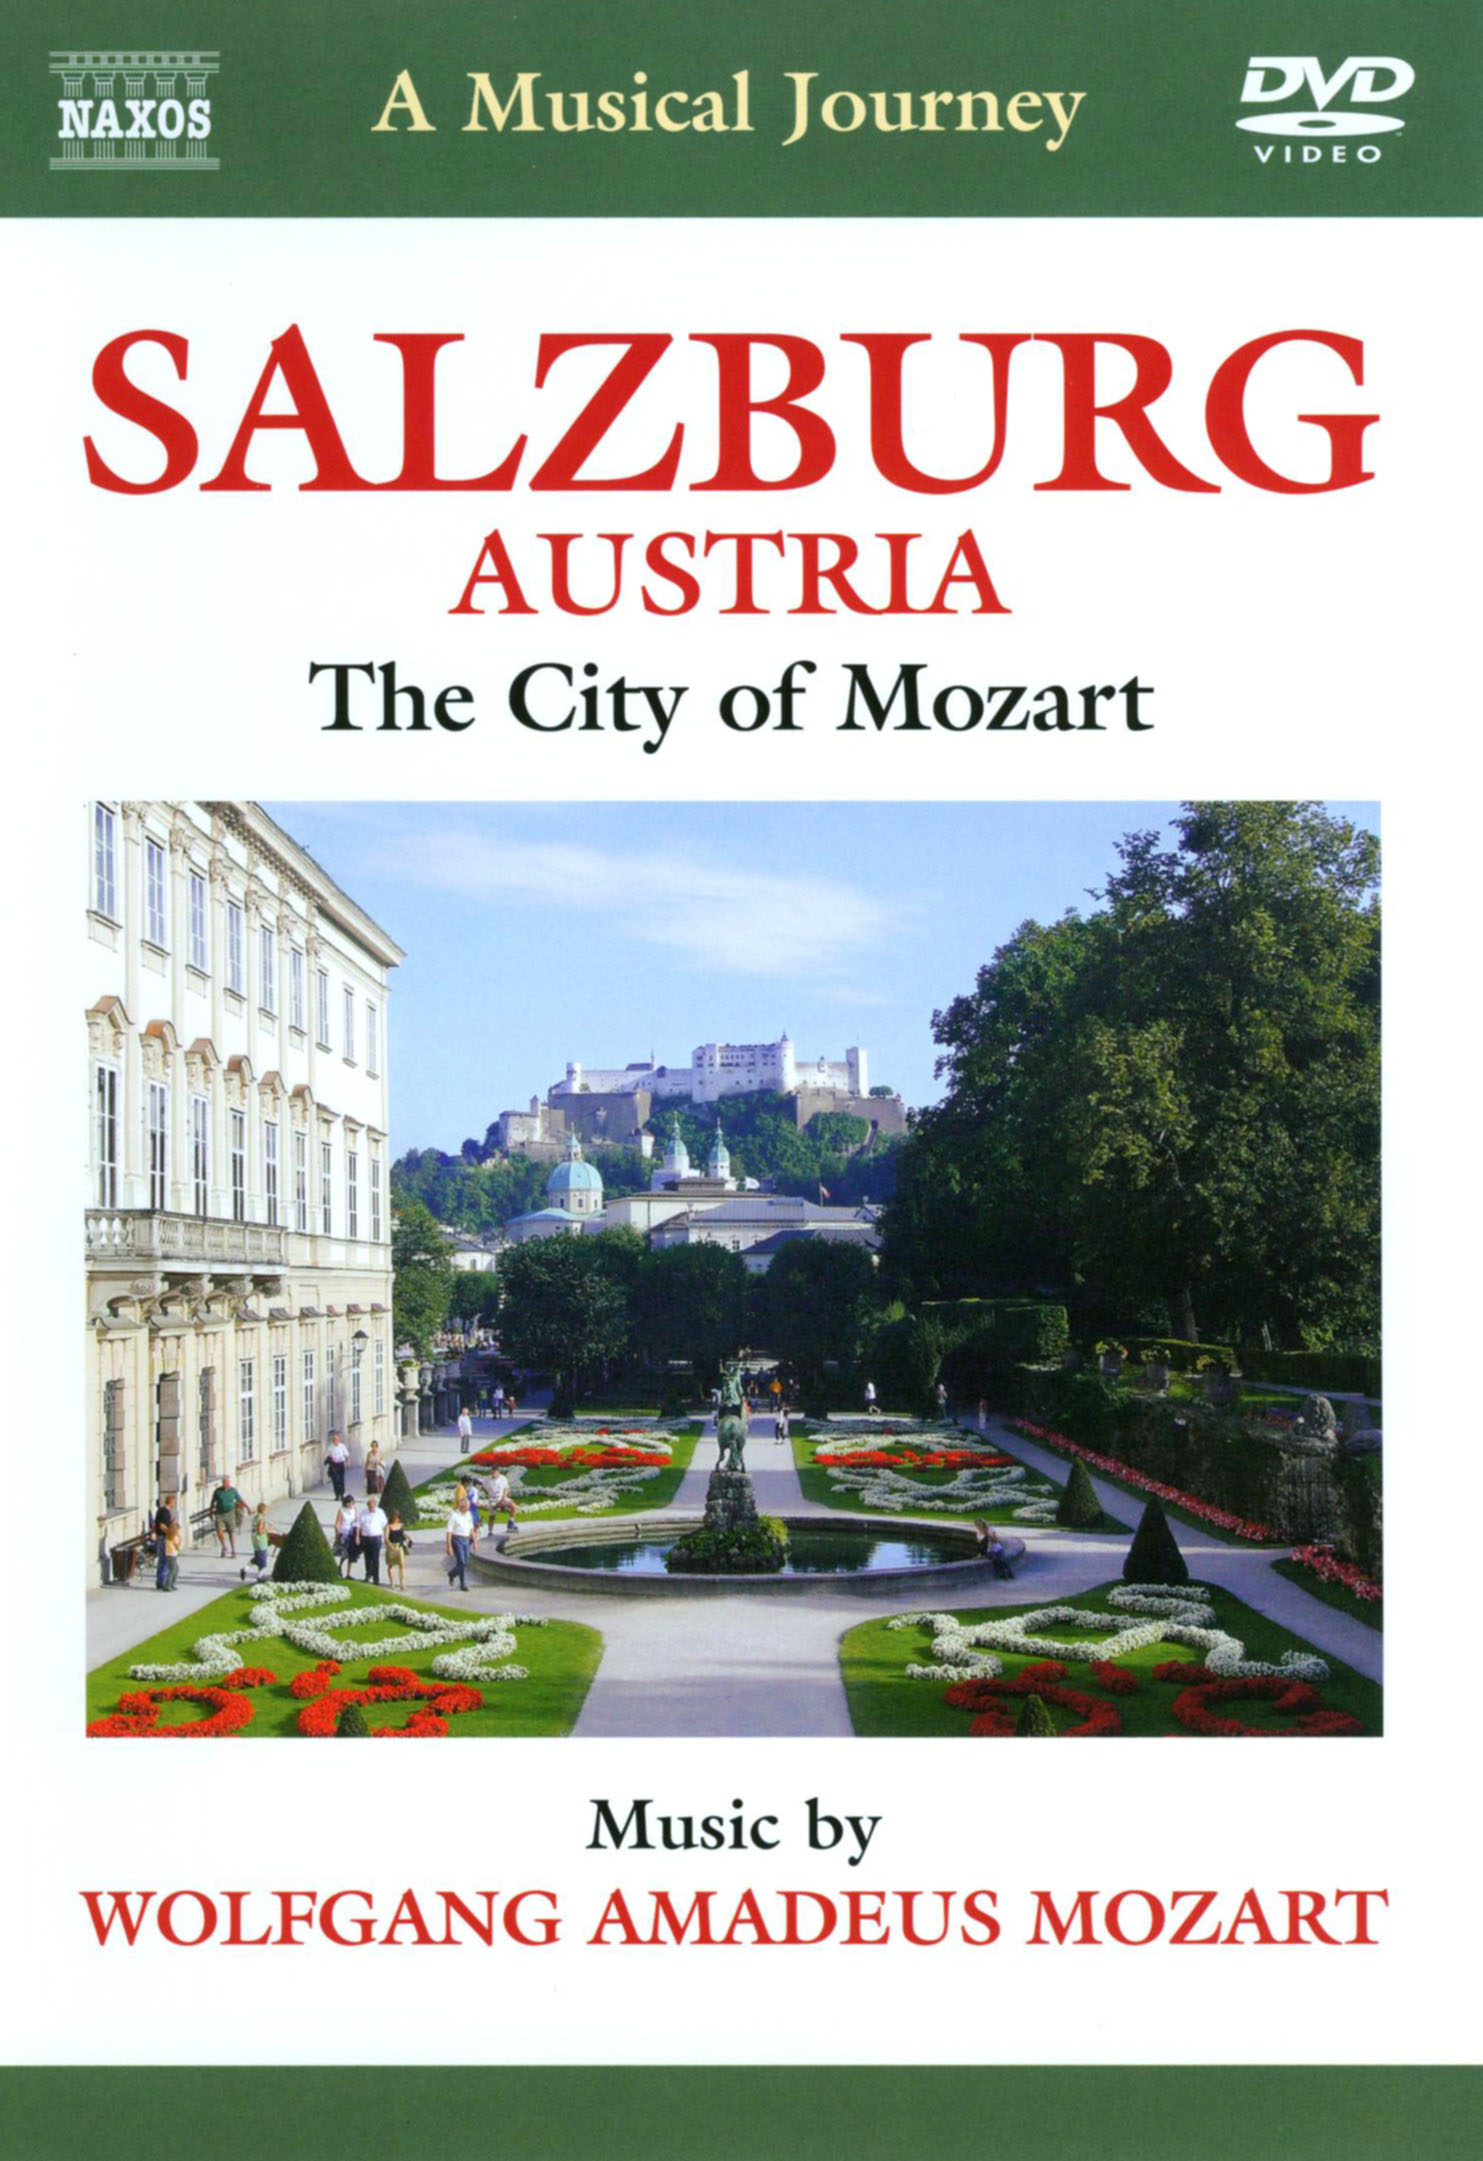 A Musical Journey: Salzburg, Austria - The City of Mozart